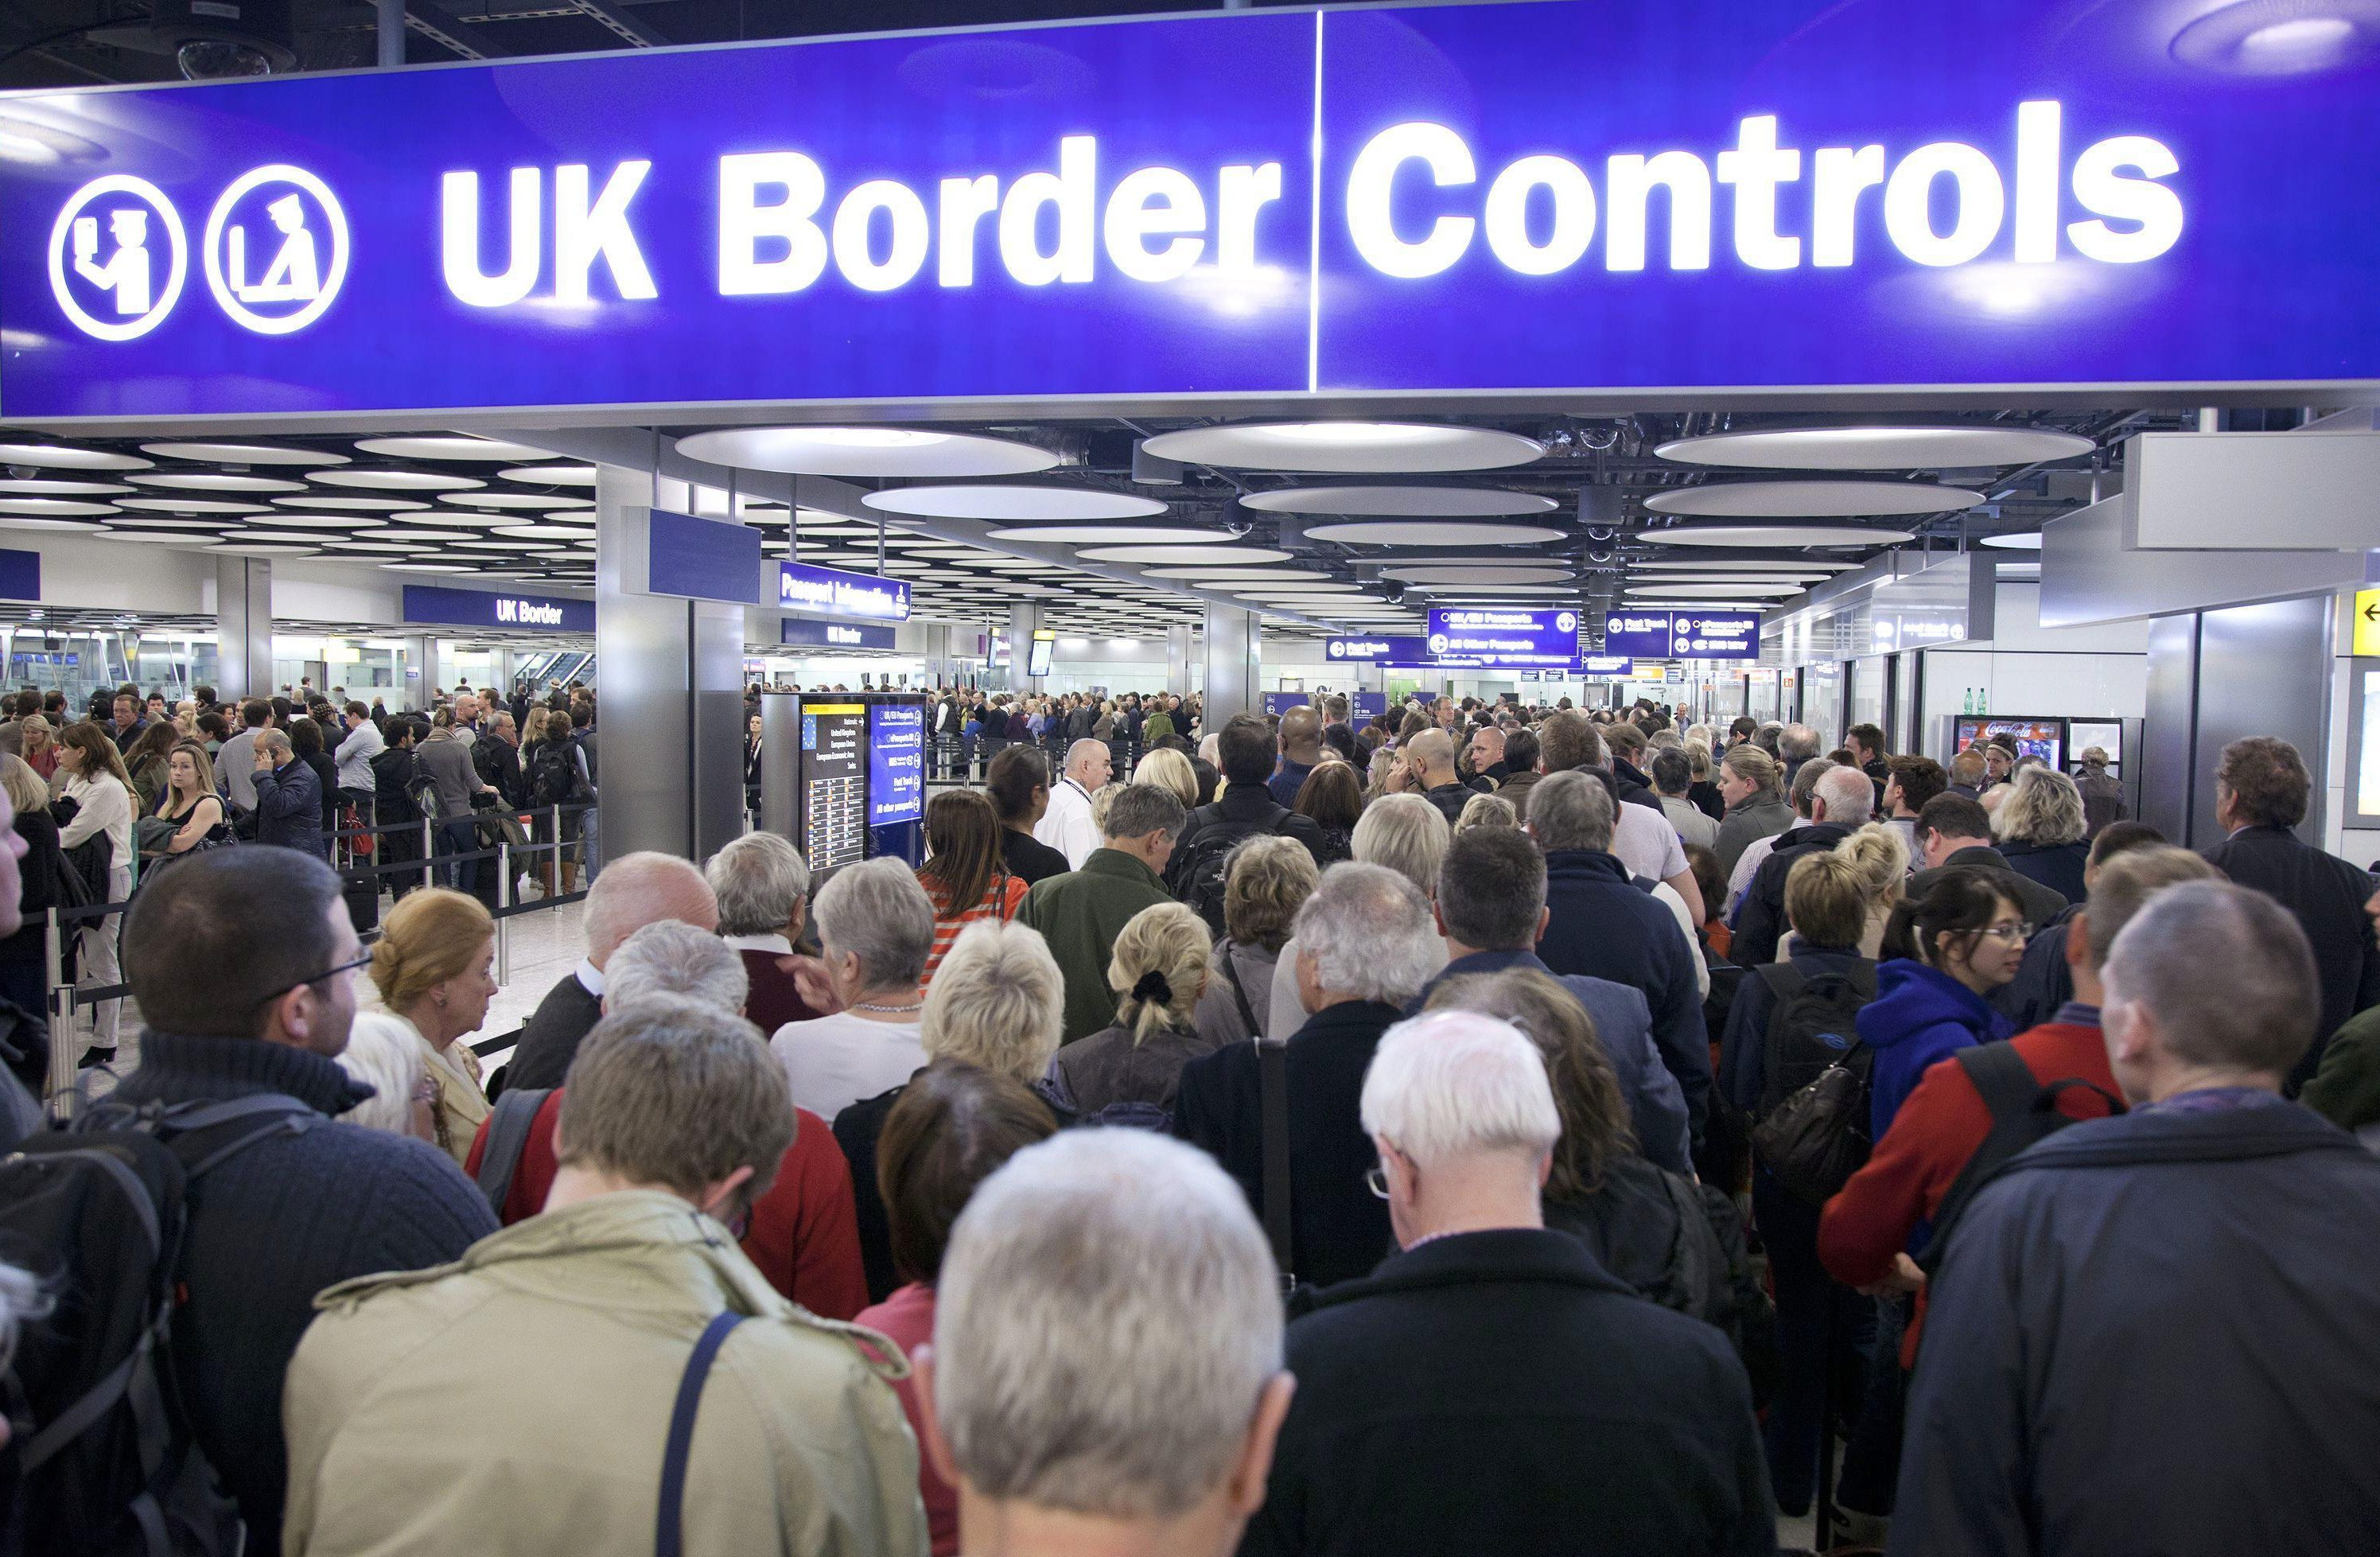 The UK needs to limit immigration to levels that bolster the economy but don't overburden public services